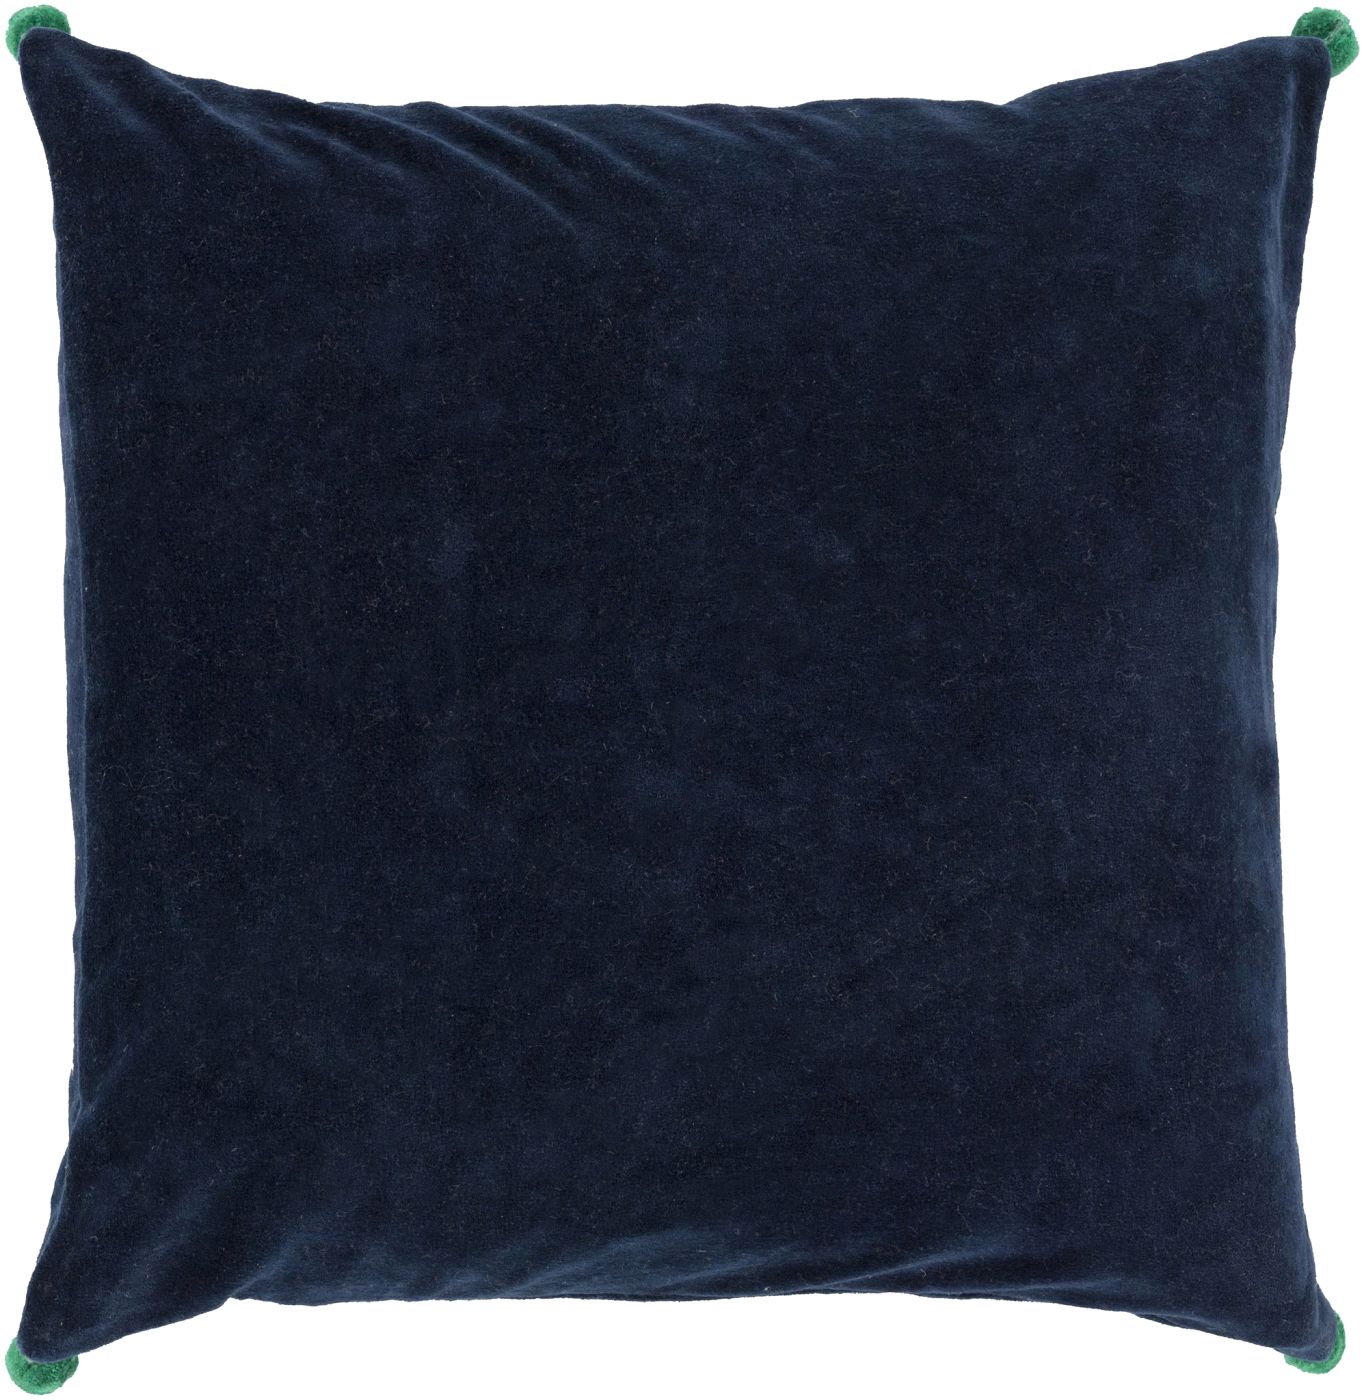 Throw Pillow Warehouse : Surya Velvet Poms Throw Pillow Blue, Green VP004-1818D. Only $39.60 at Contemporary Furniture ...